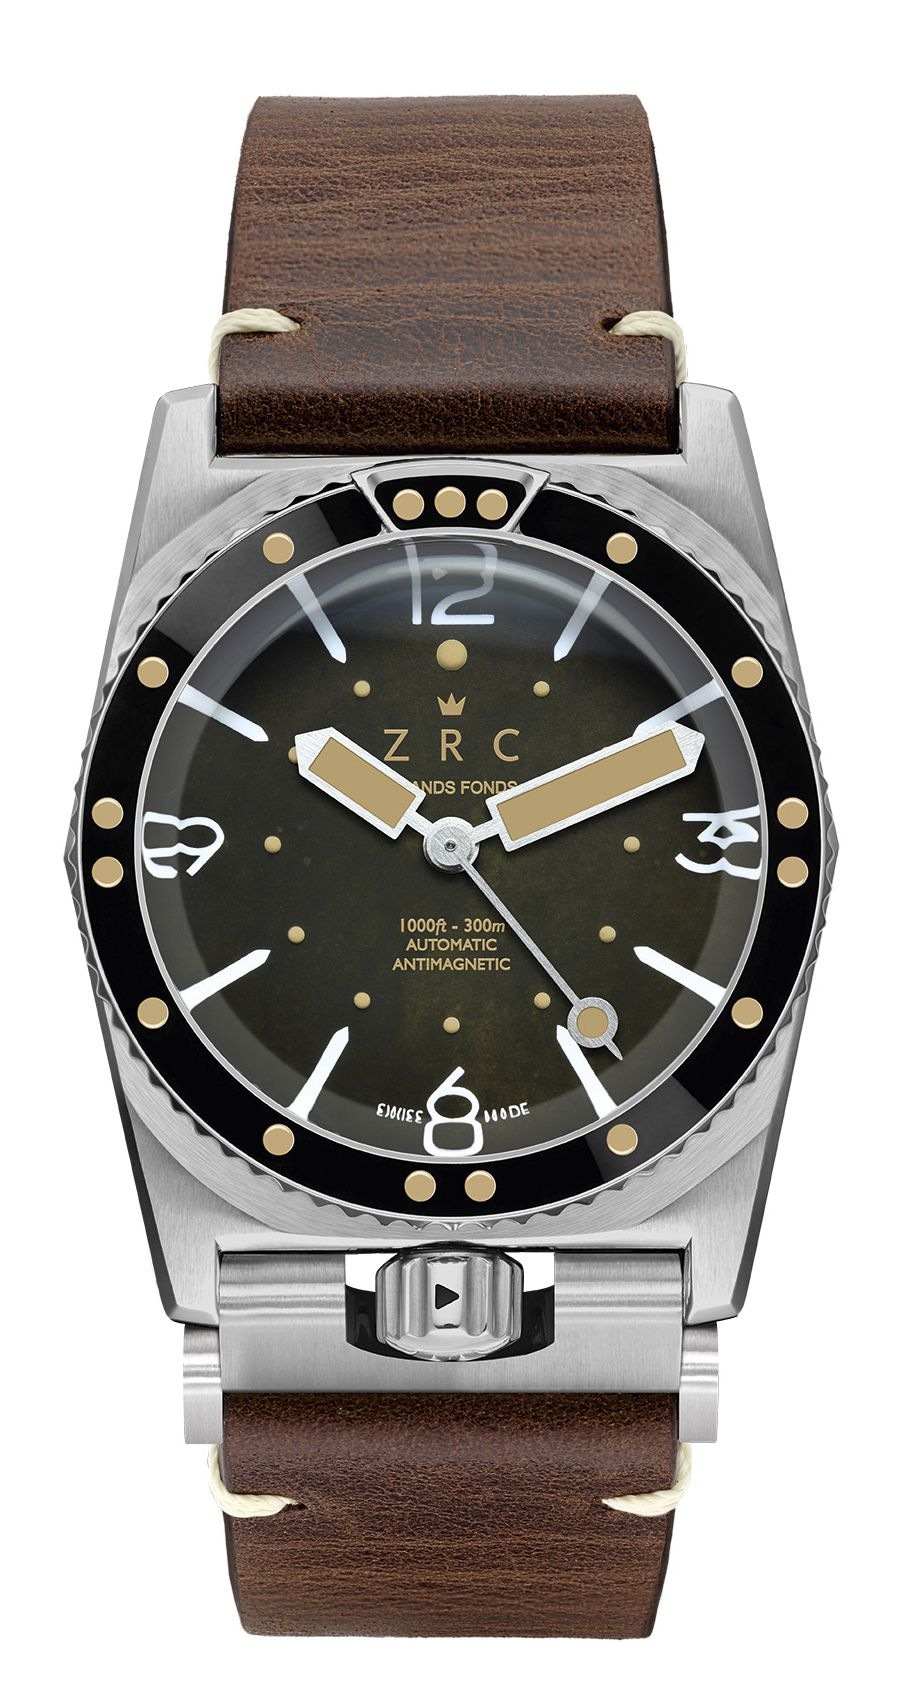 ZRC1904 1964 Spirit GF40215 Unisex Watch